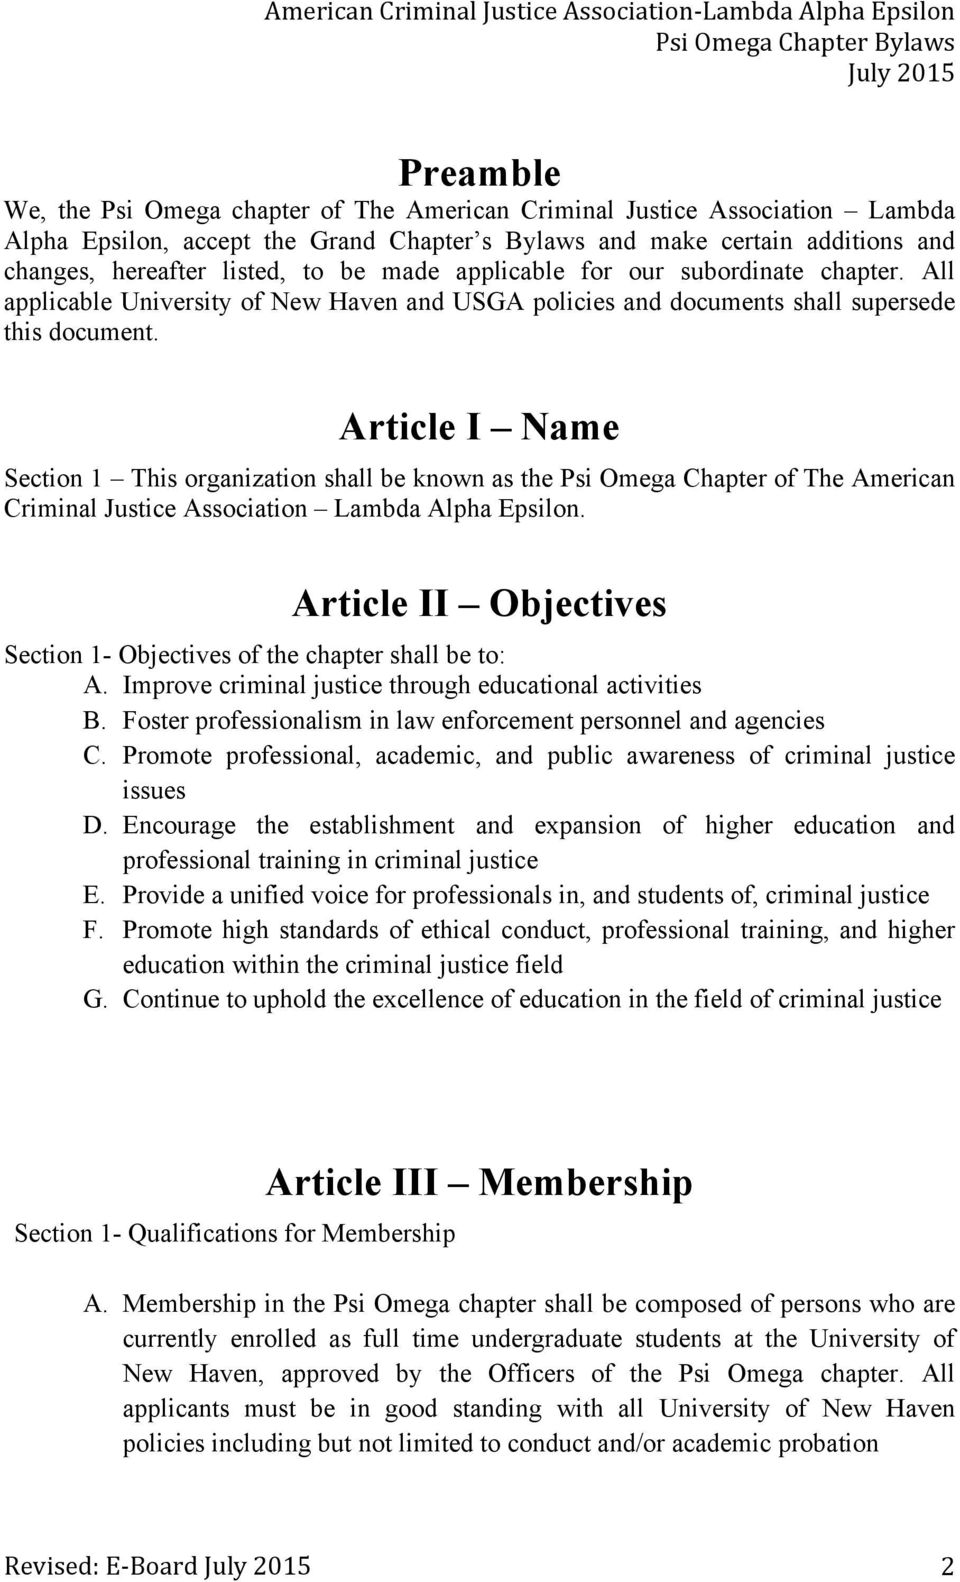 Article I Name Section 1 This organization shall be known as the Psi Omega Chapter of The American Criminal Justice Association Lambda Alpha Epsilon.